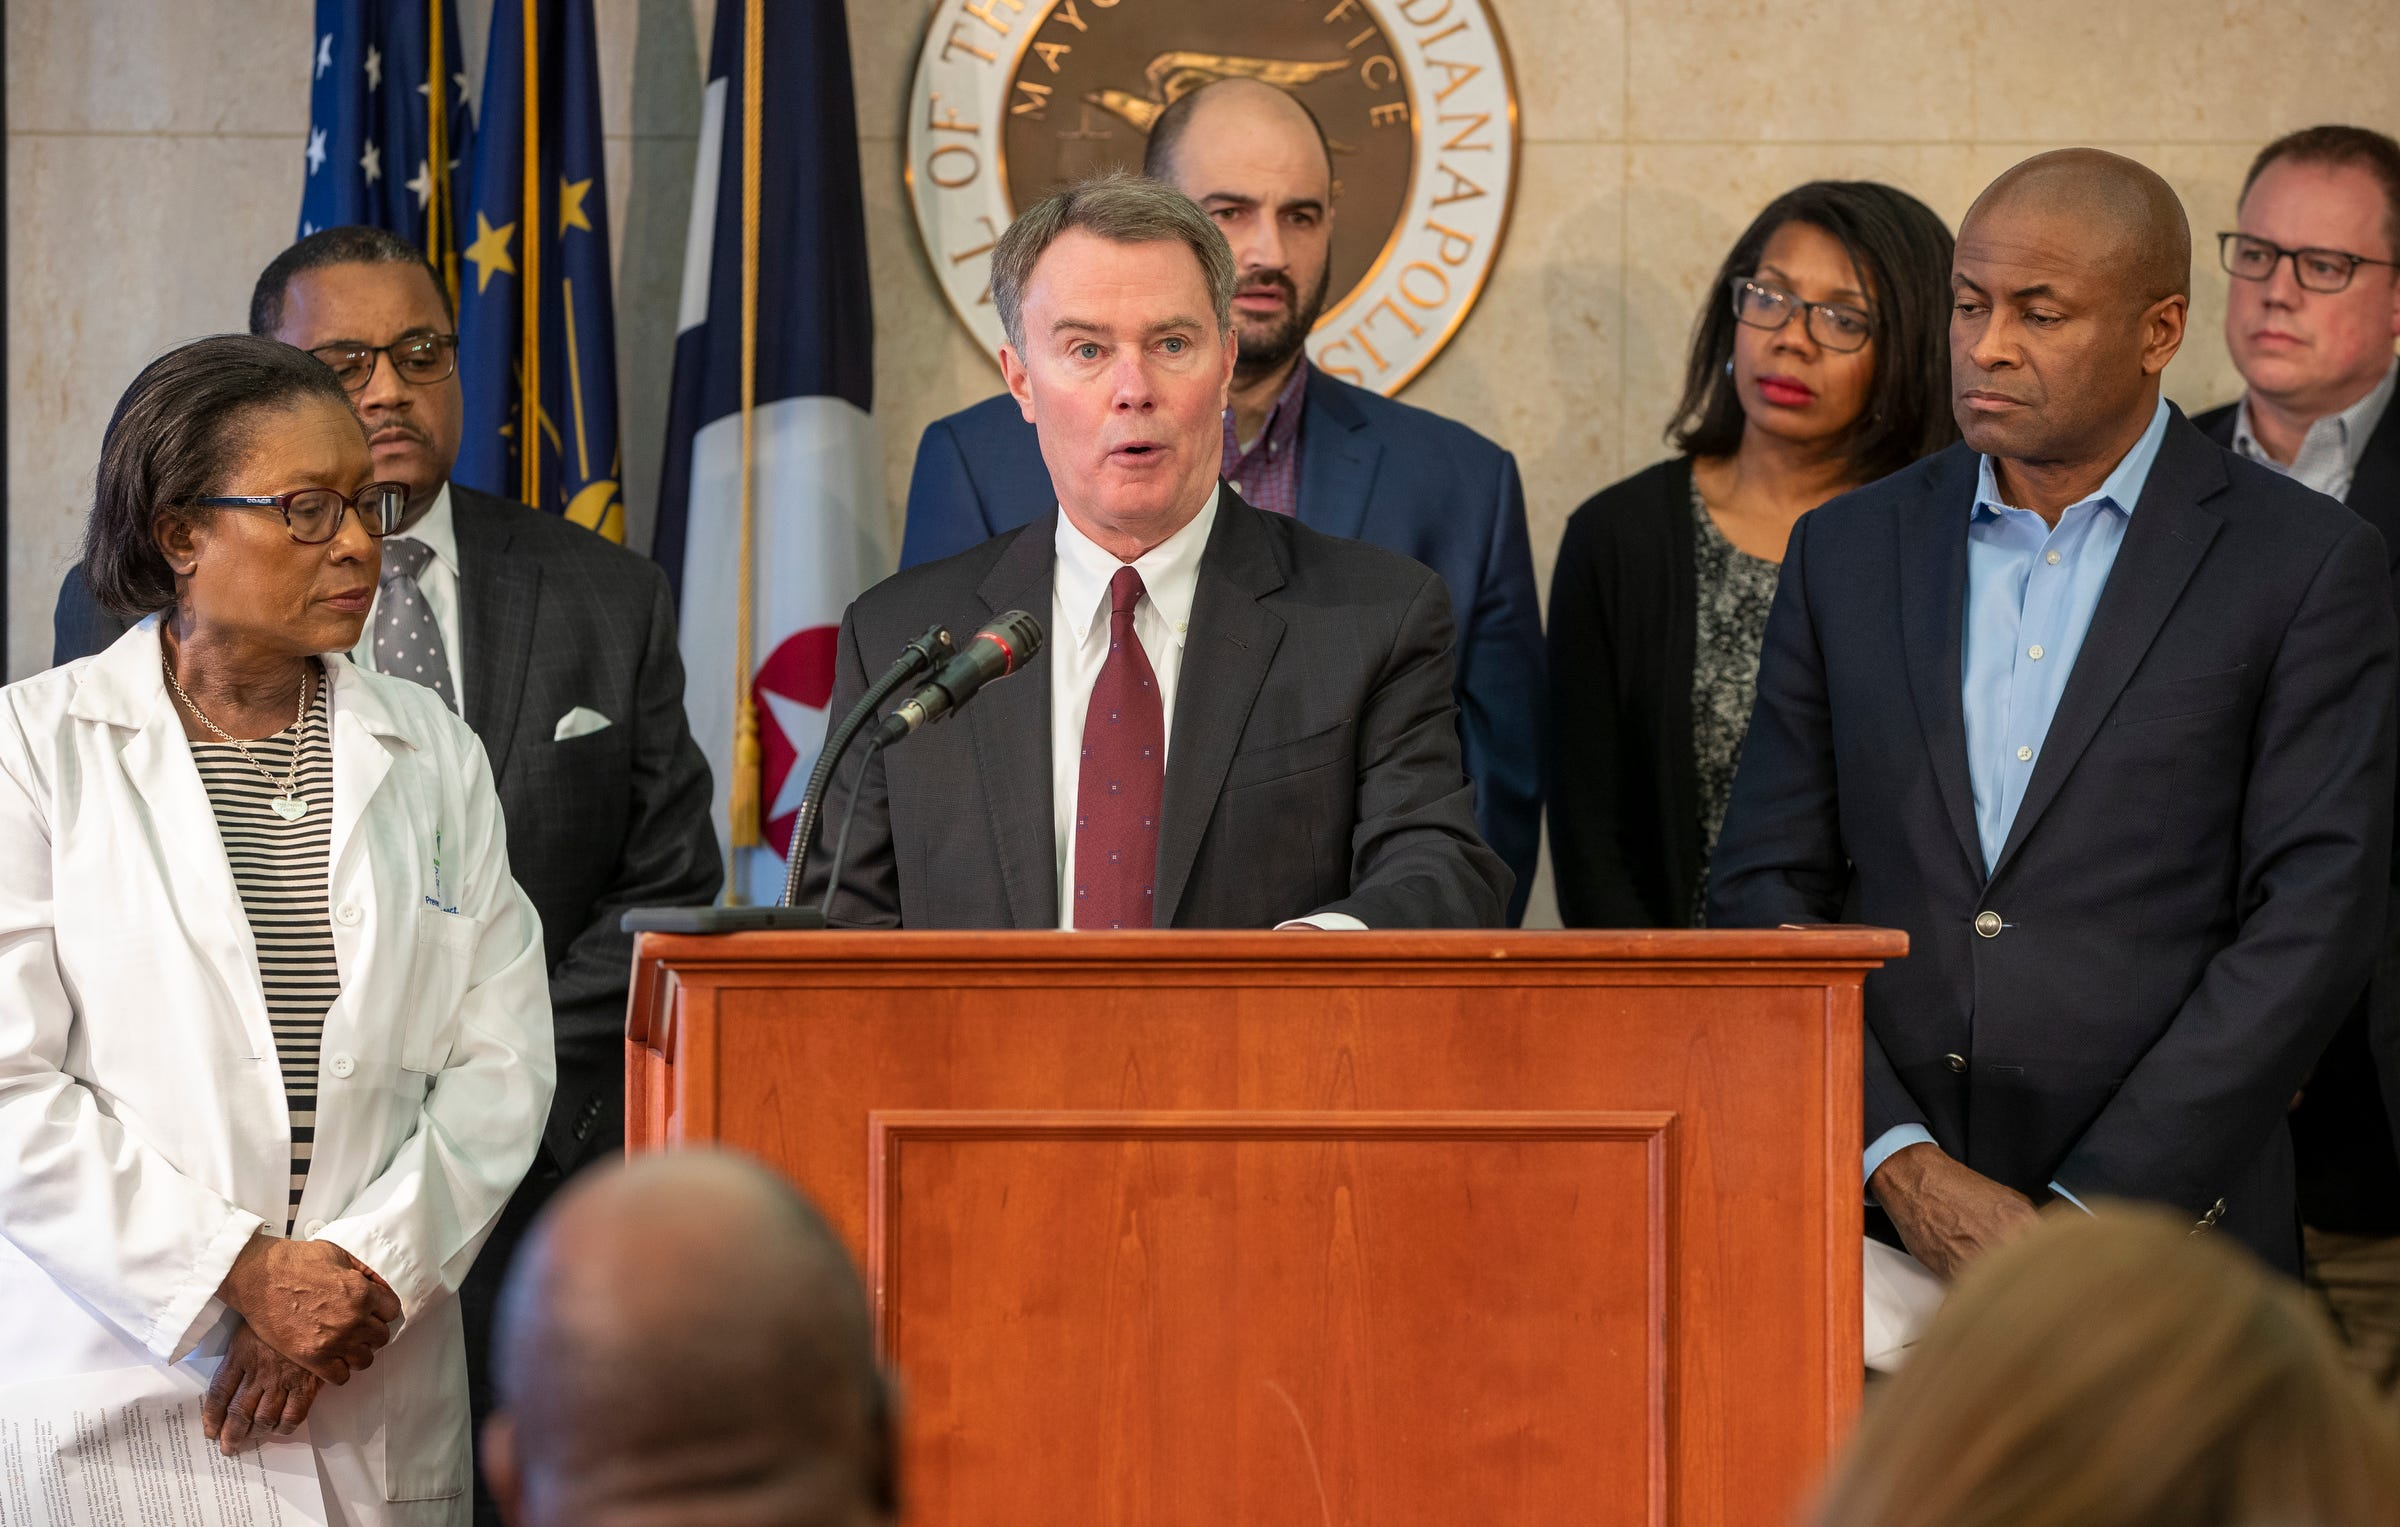 Indianapolis Mayor Joe Hogsett, surrounded by educators, medical personnel, and other city officials, talks about the decision to close county schools amid fears about COVID-19,  Indianapolis, Thursday, March 12, 2020. The move is a preemptive one, and currently no students or faculty have the Coronavirus.